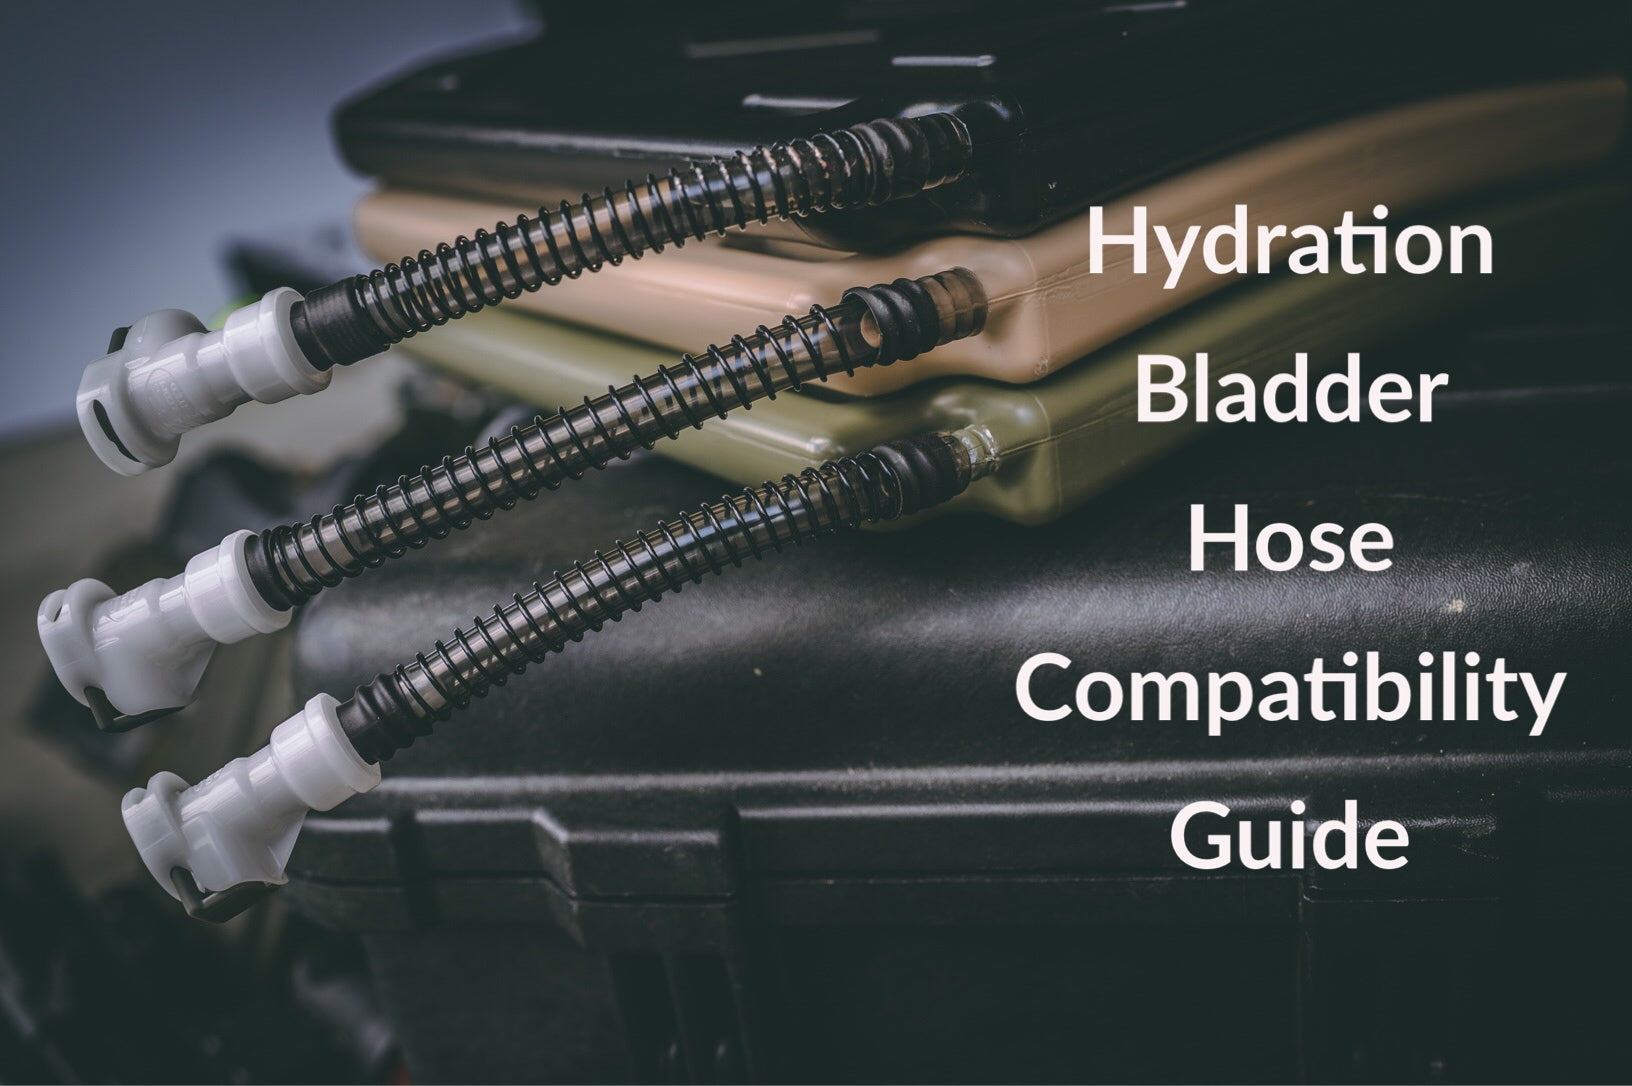 Hydration Bladder and Hose Compatibility Guide for IcePlate Classic and IcePlate Curve